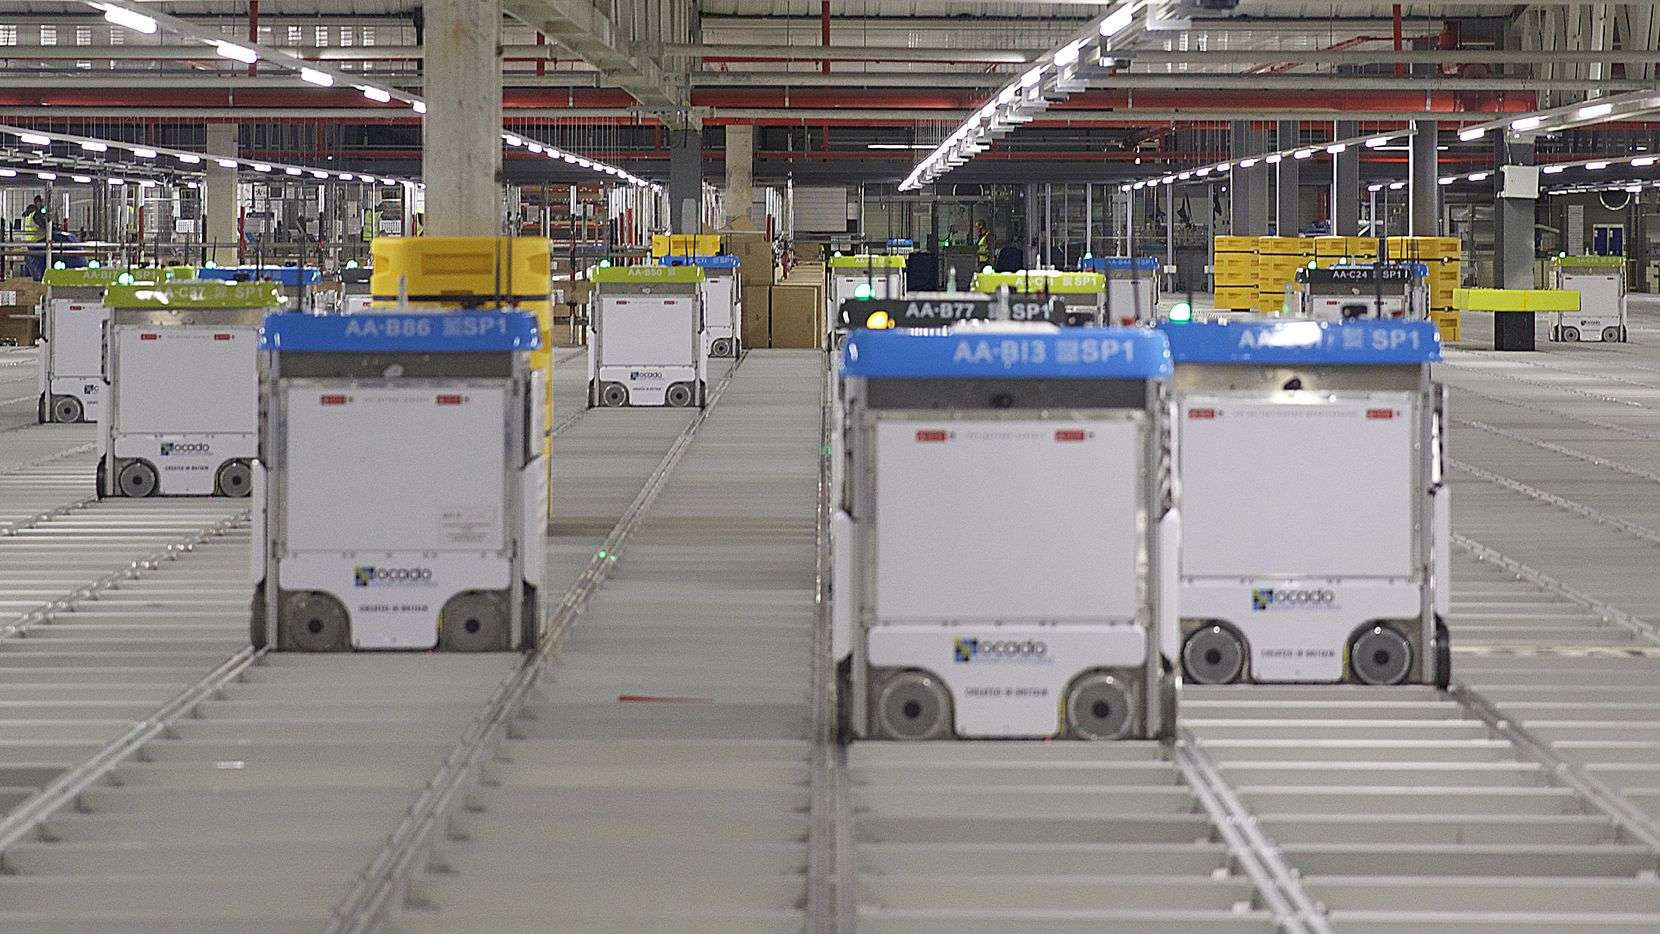 Robots on a grid at an Ocado fullfilment center in the U.K. where the company has about 600,000 active customers. Ocado entered into an exclusive partnership with Kroger to build the automated online grocery fulfillment centers in the U.S.